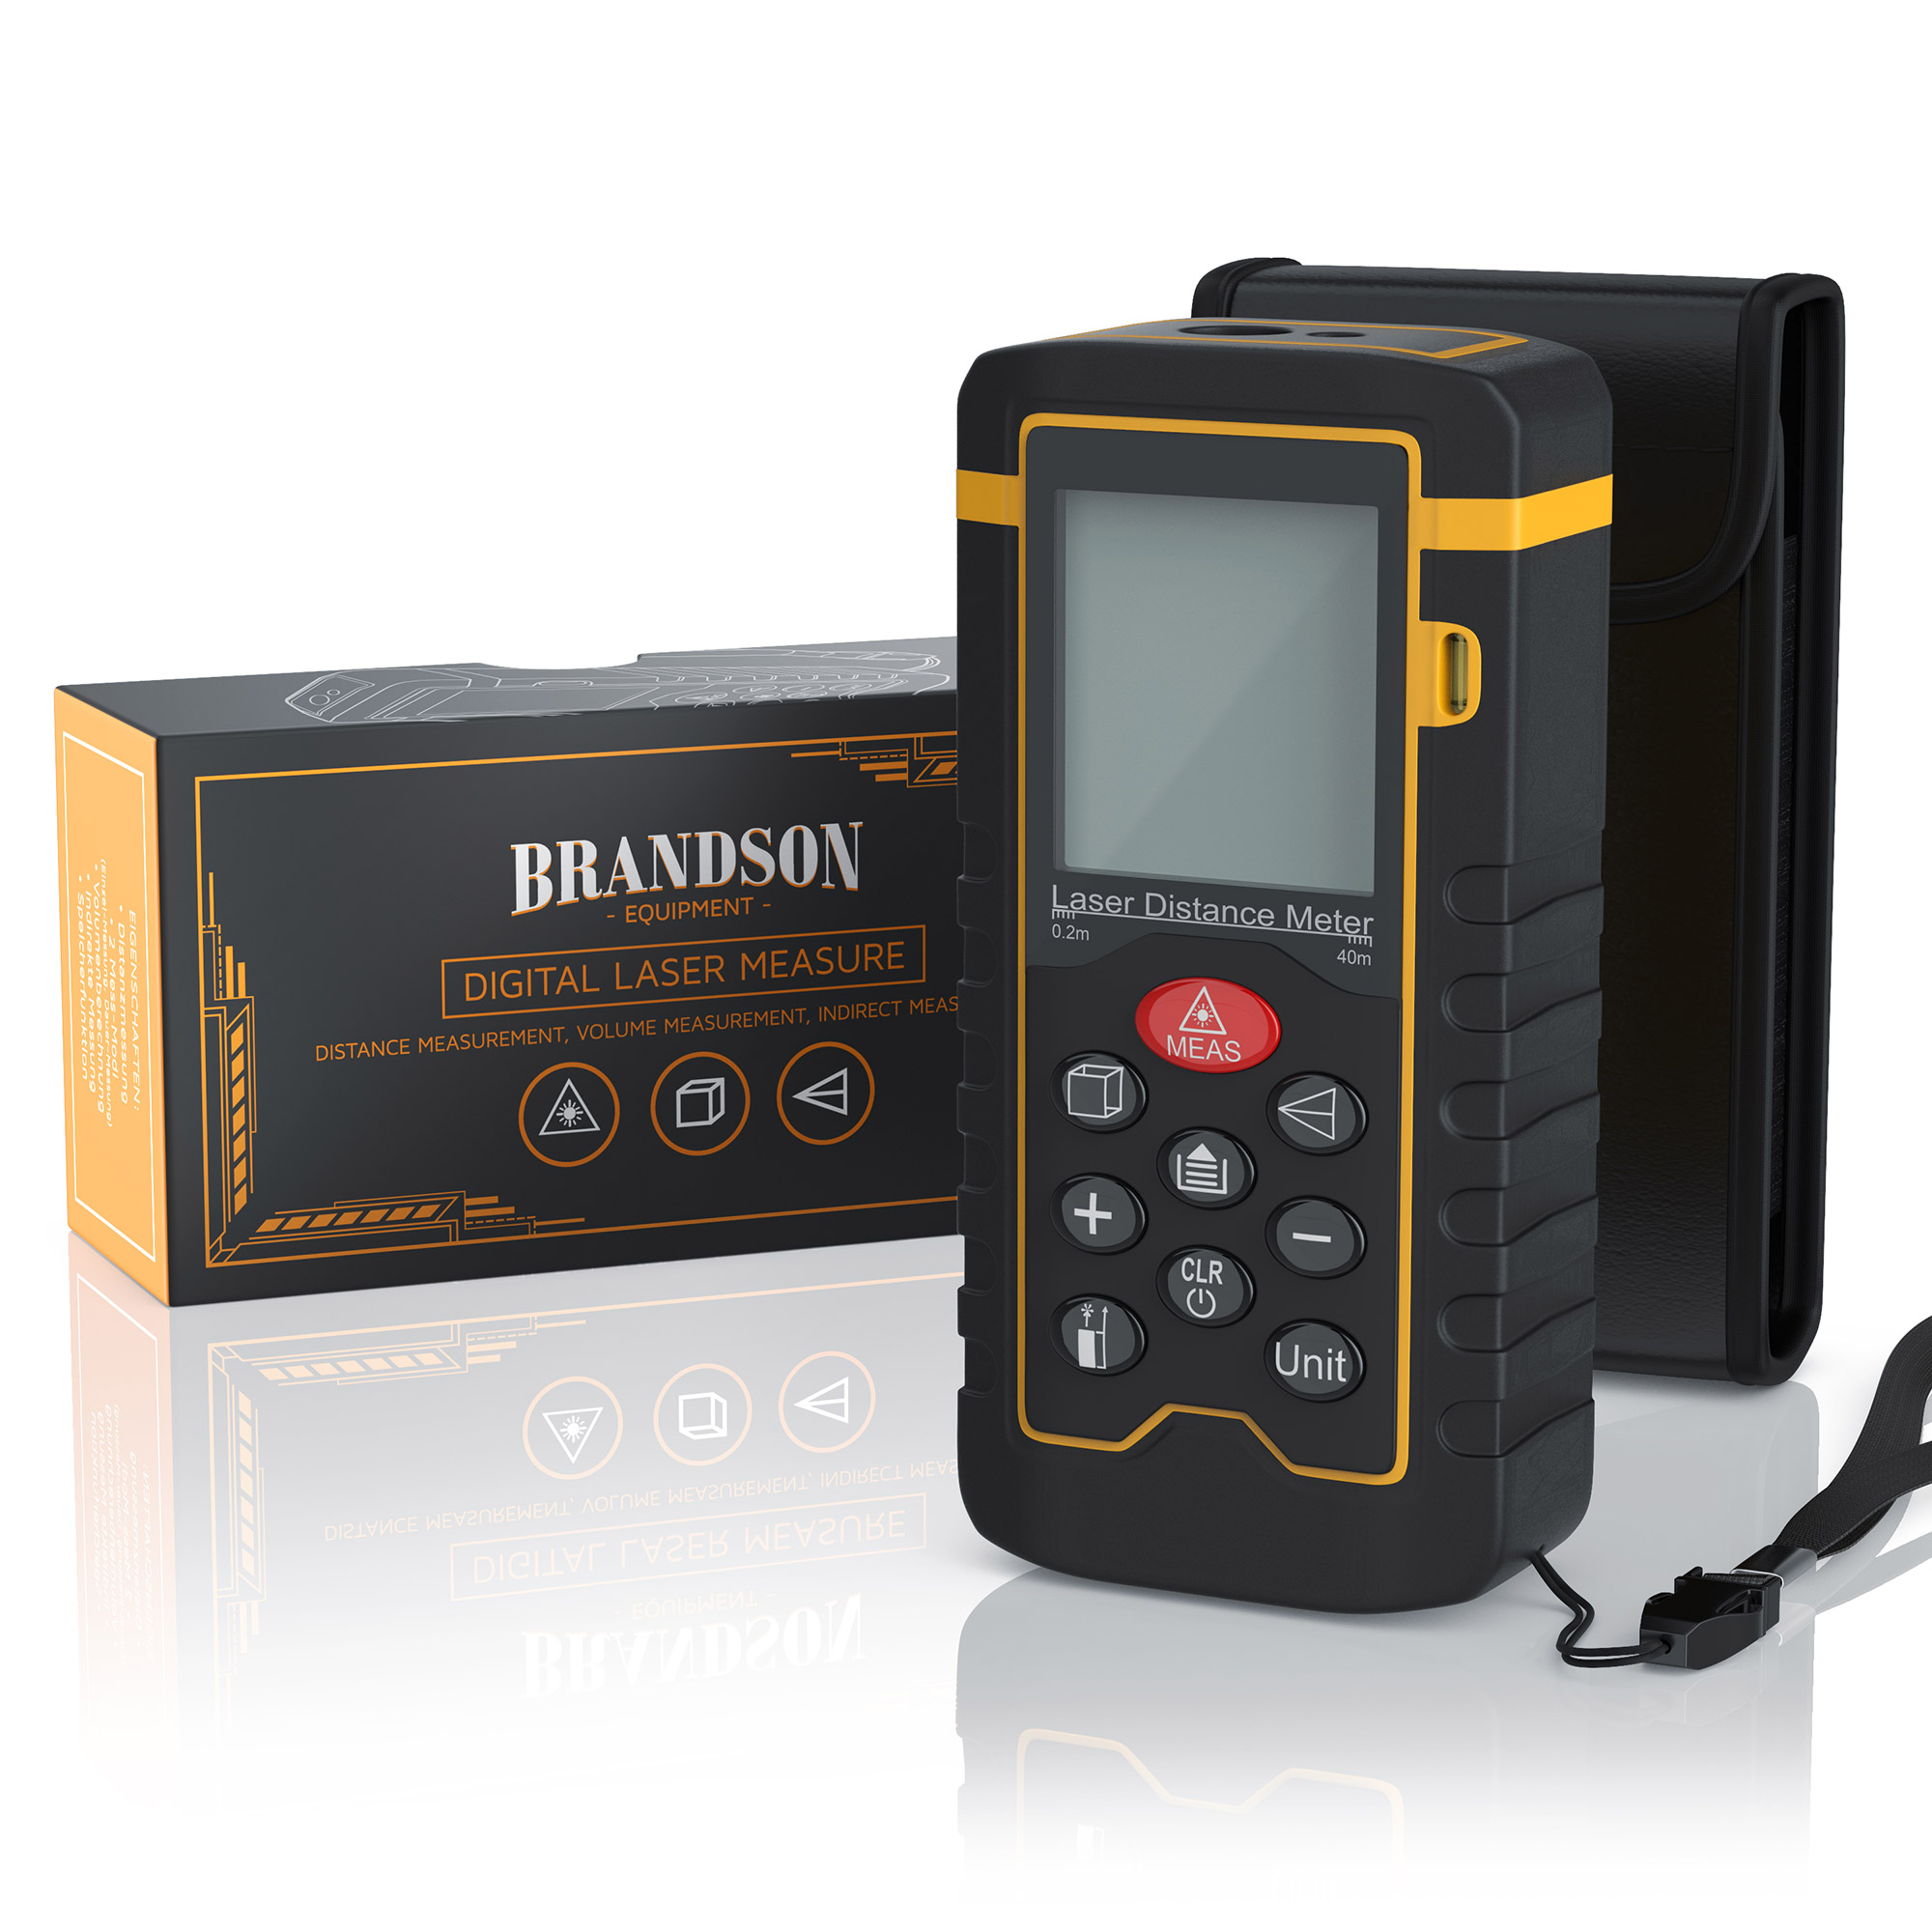 302316_digital-laser-measure_Packshot.jpg